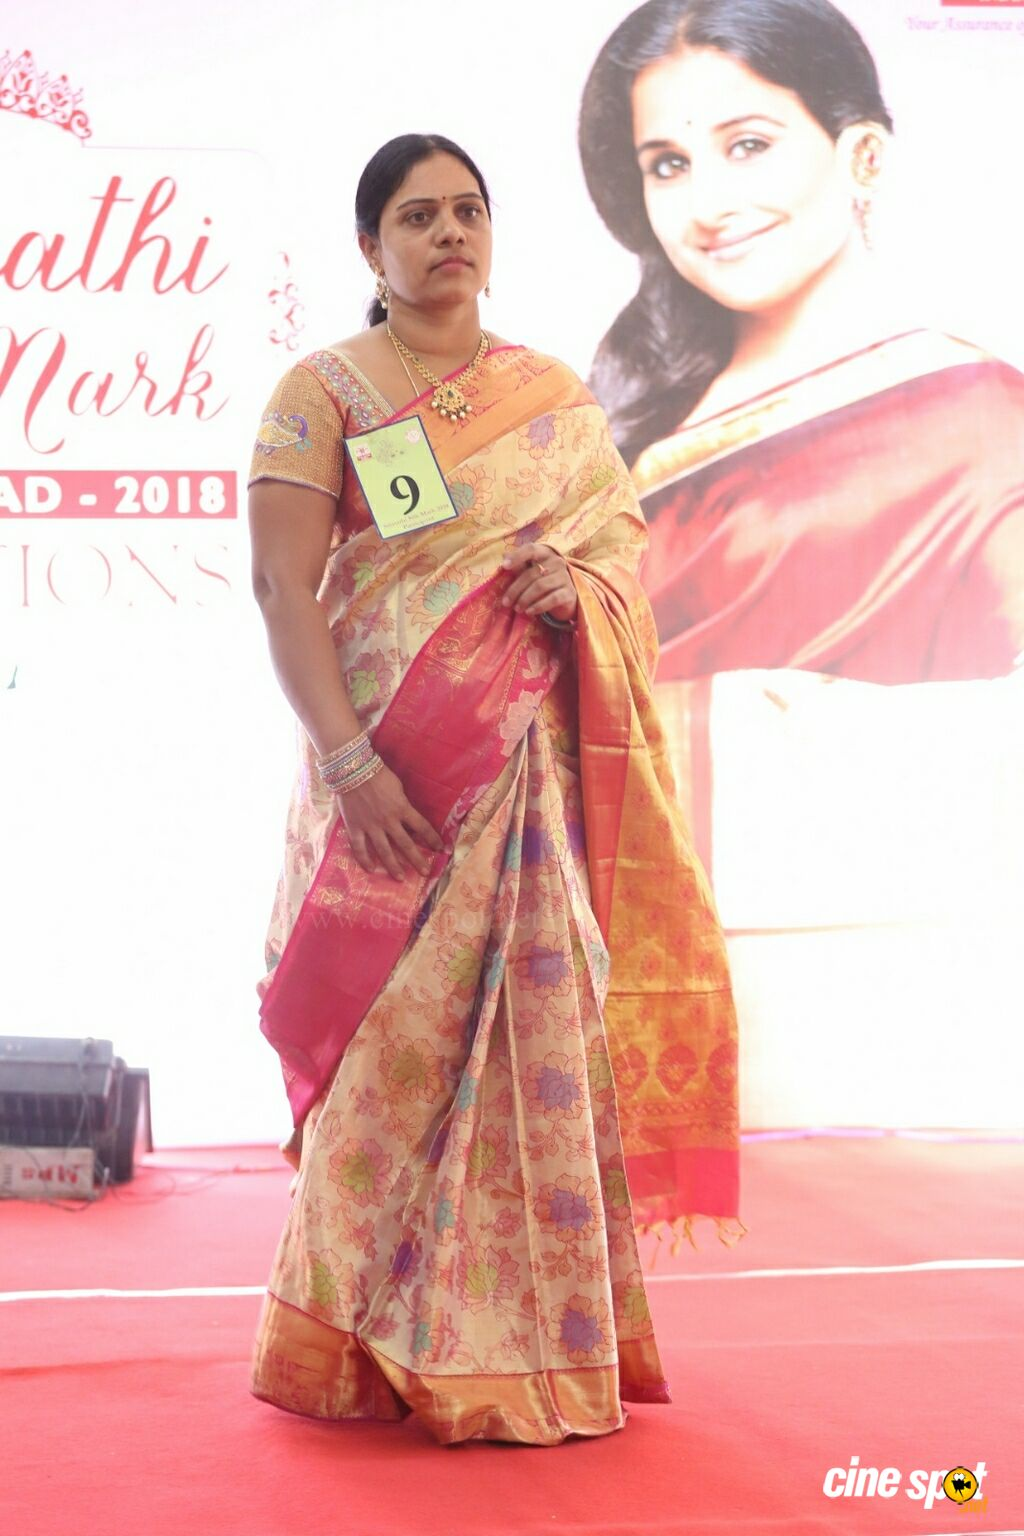 Hyderabad Srimathi Silk Mark 2018 Auditions (56)